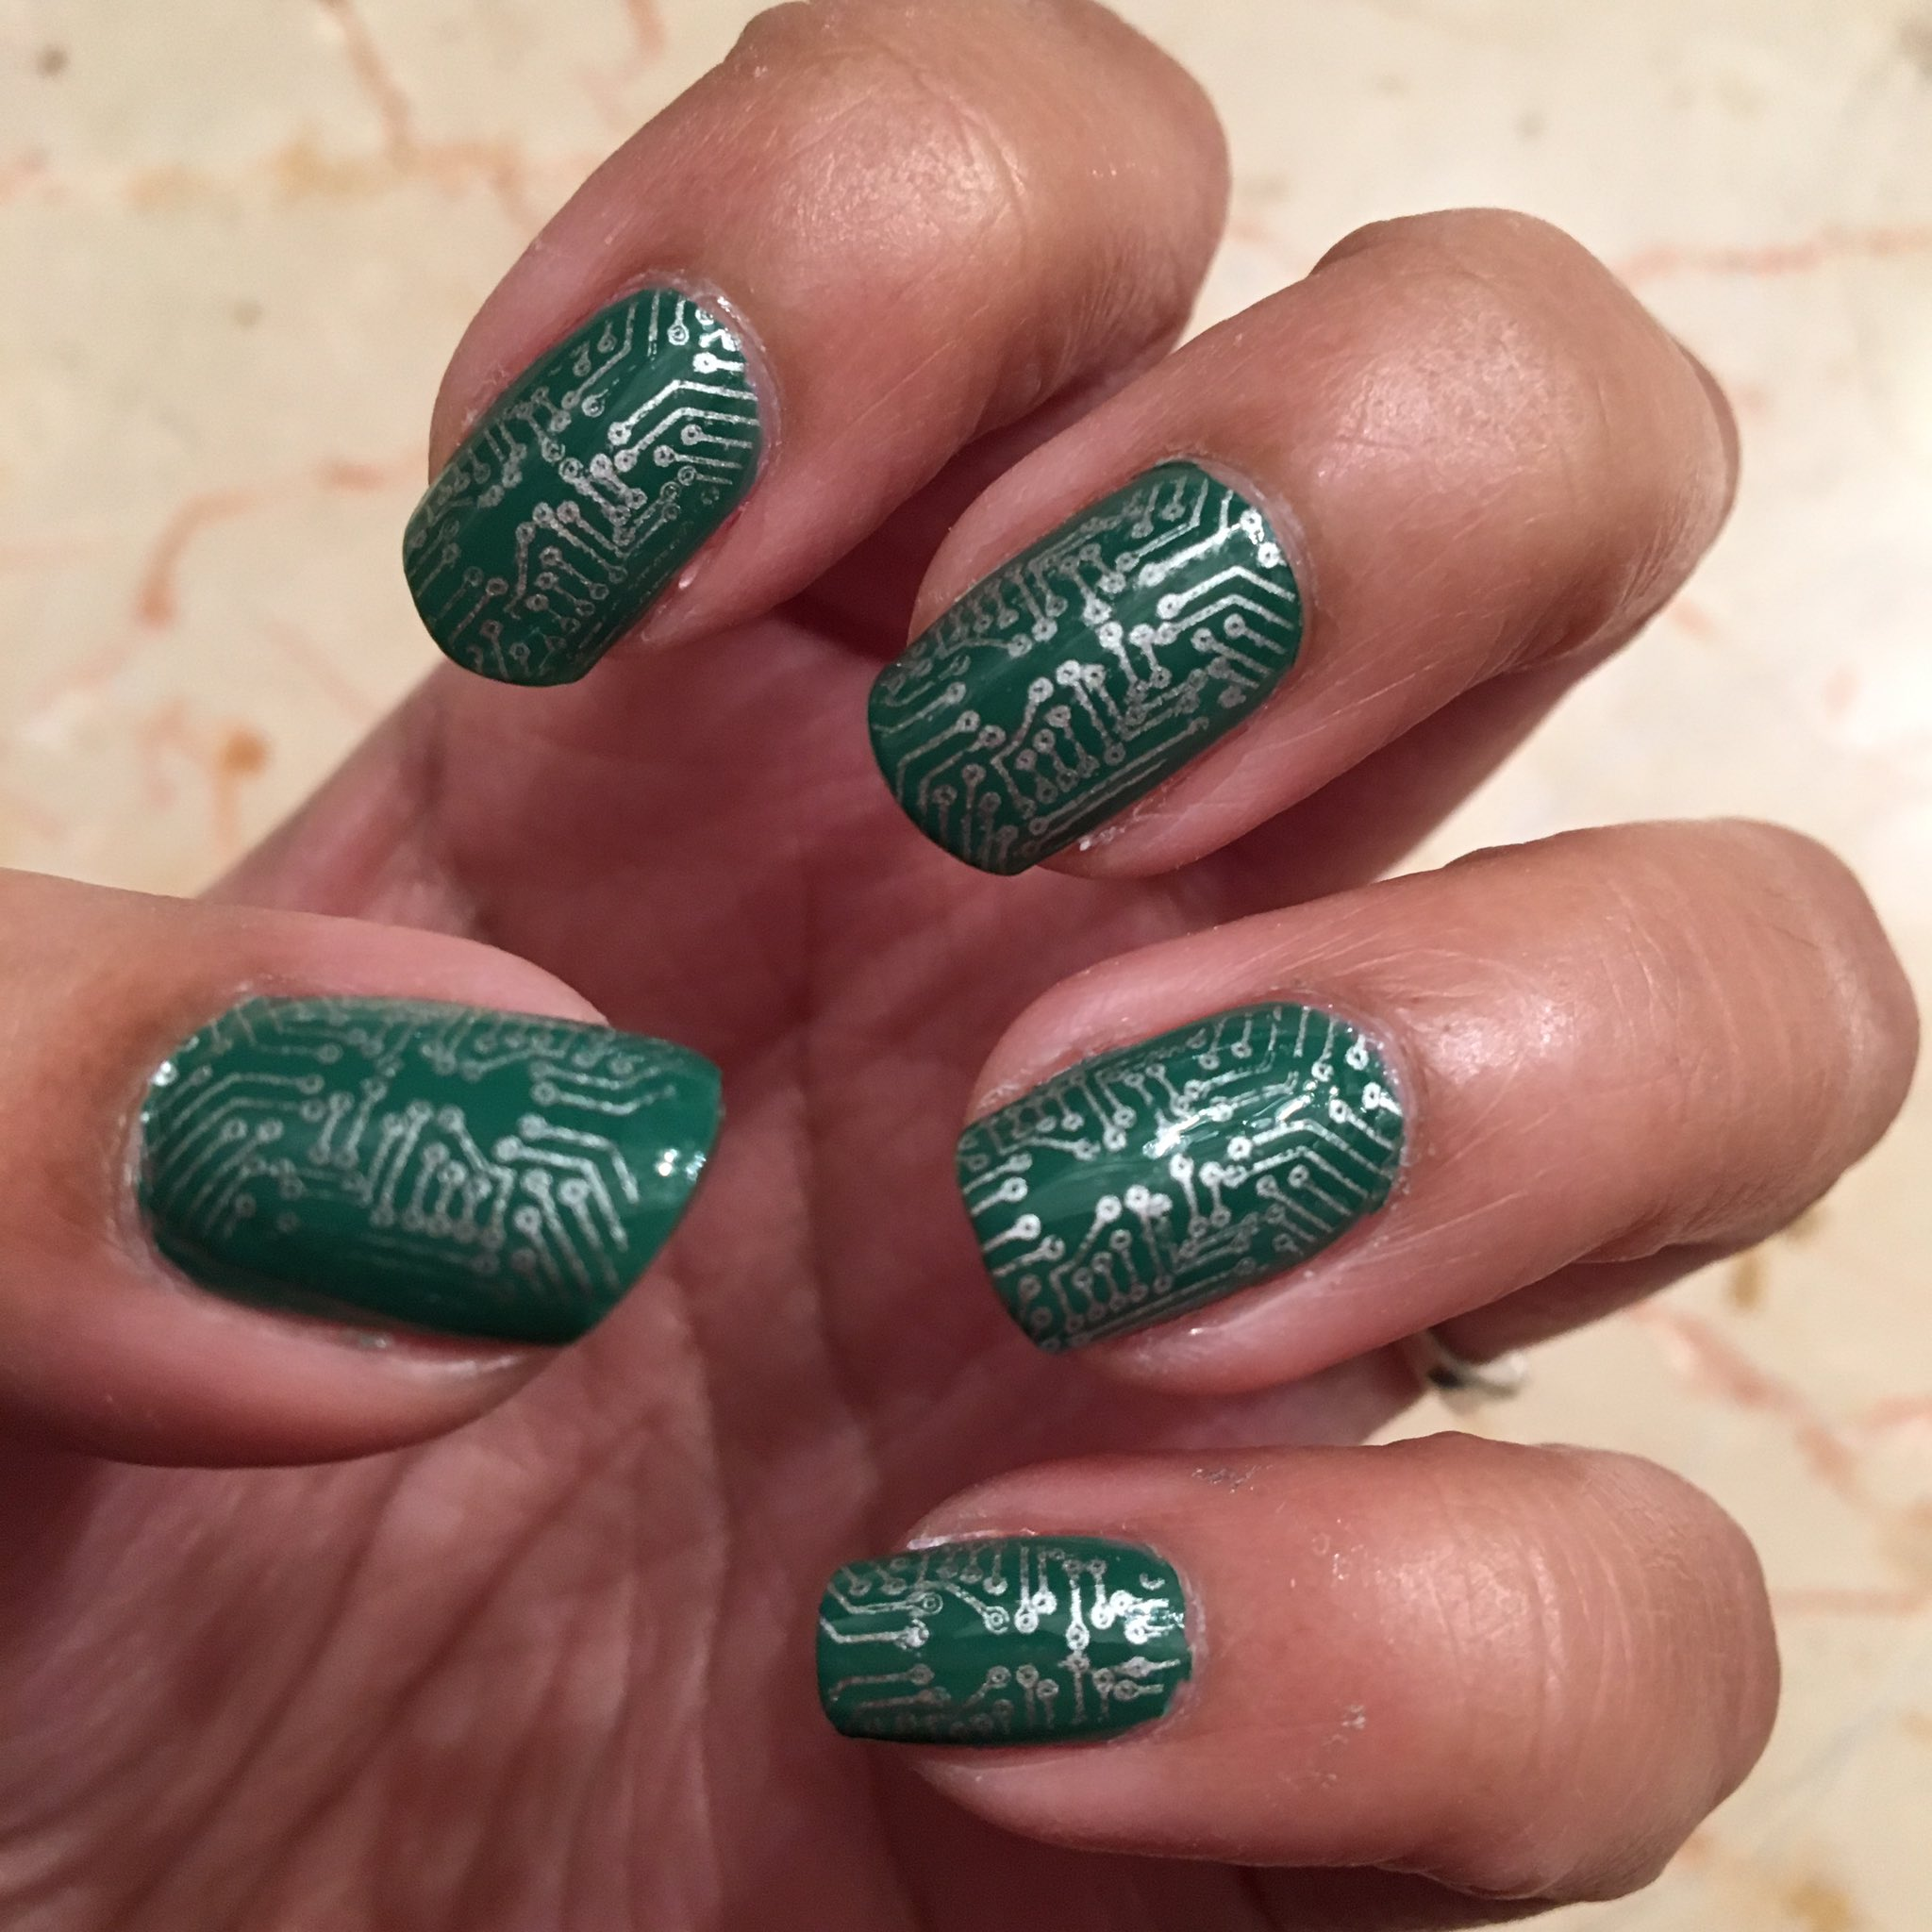 Circuit board nails for the @ghc conference! I have all the nail polish if you want to do your own!! 💅🏽 #GHC16 https://t.co/8G8r9WMsQw